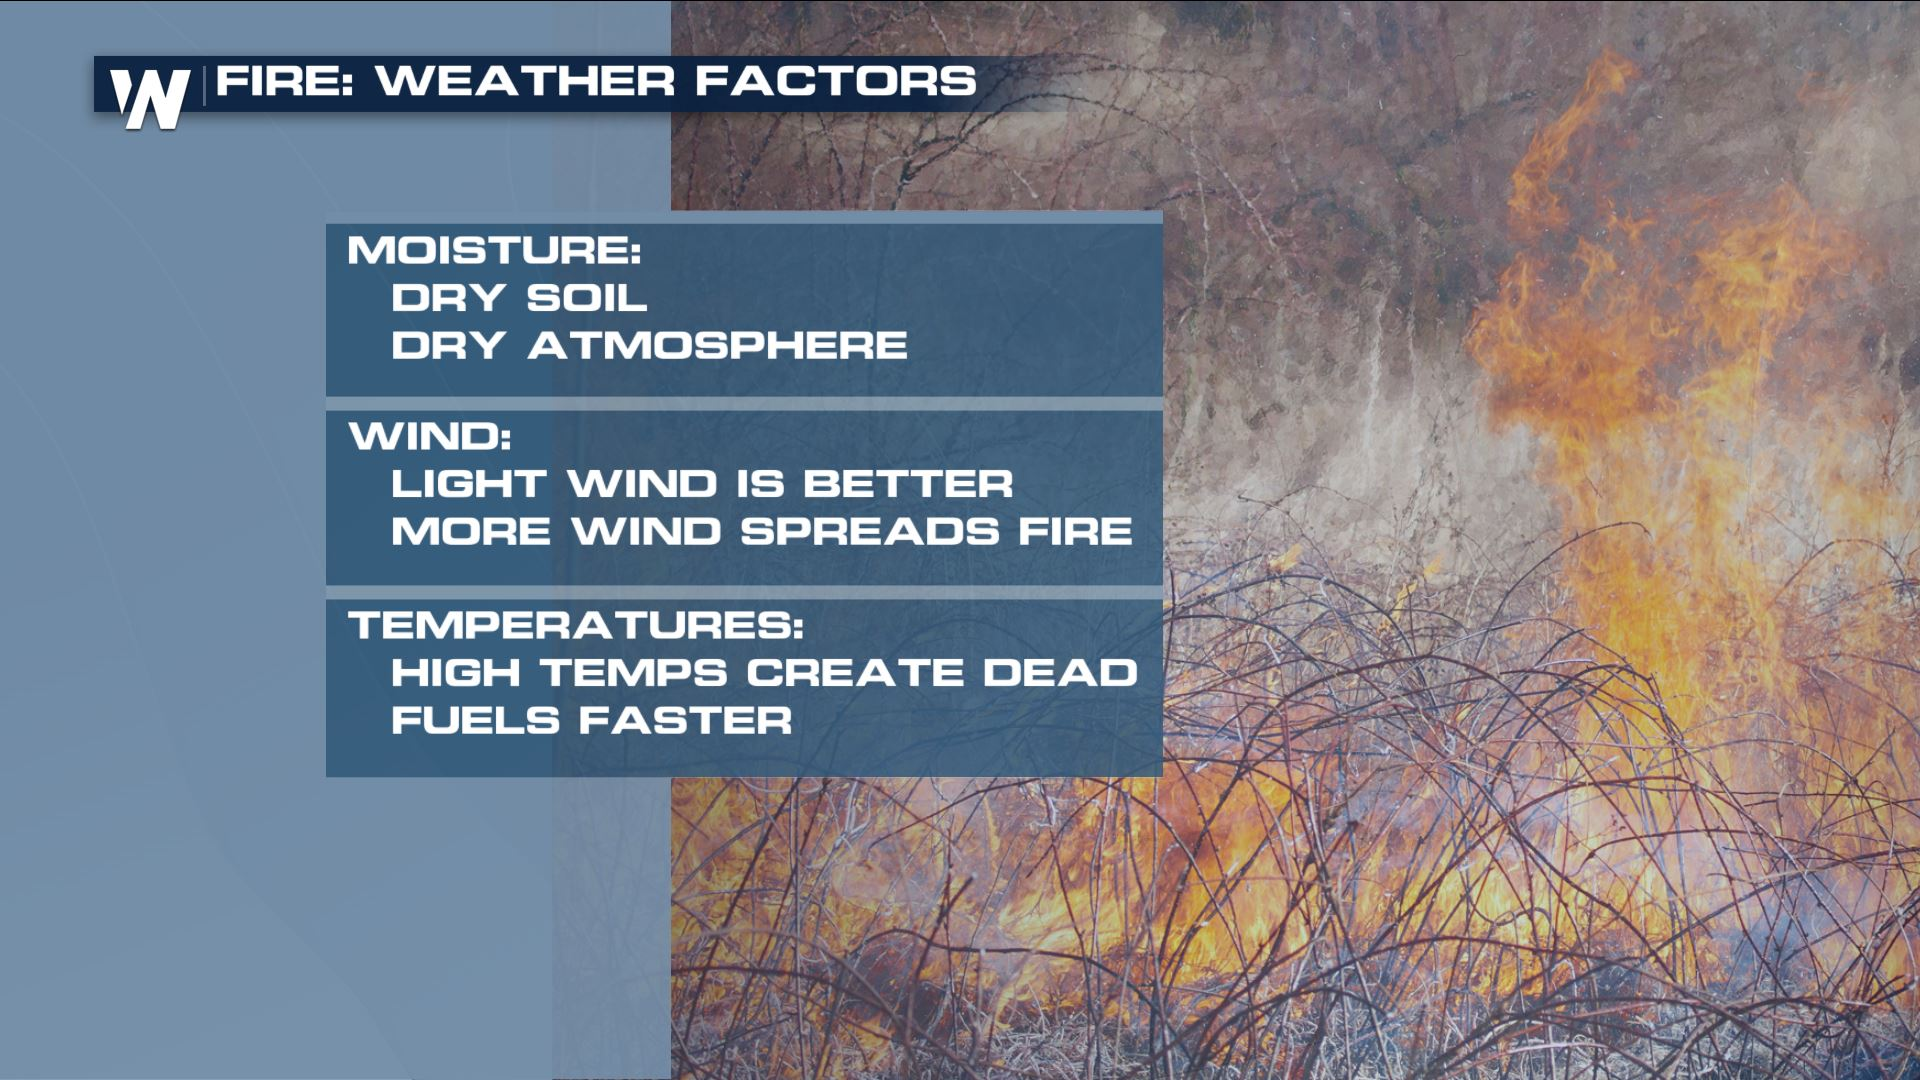 Fire Weather Risk in Southern Sections of the Nation